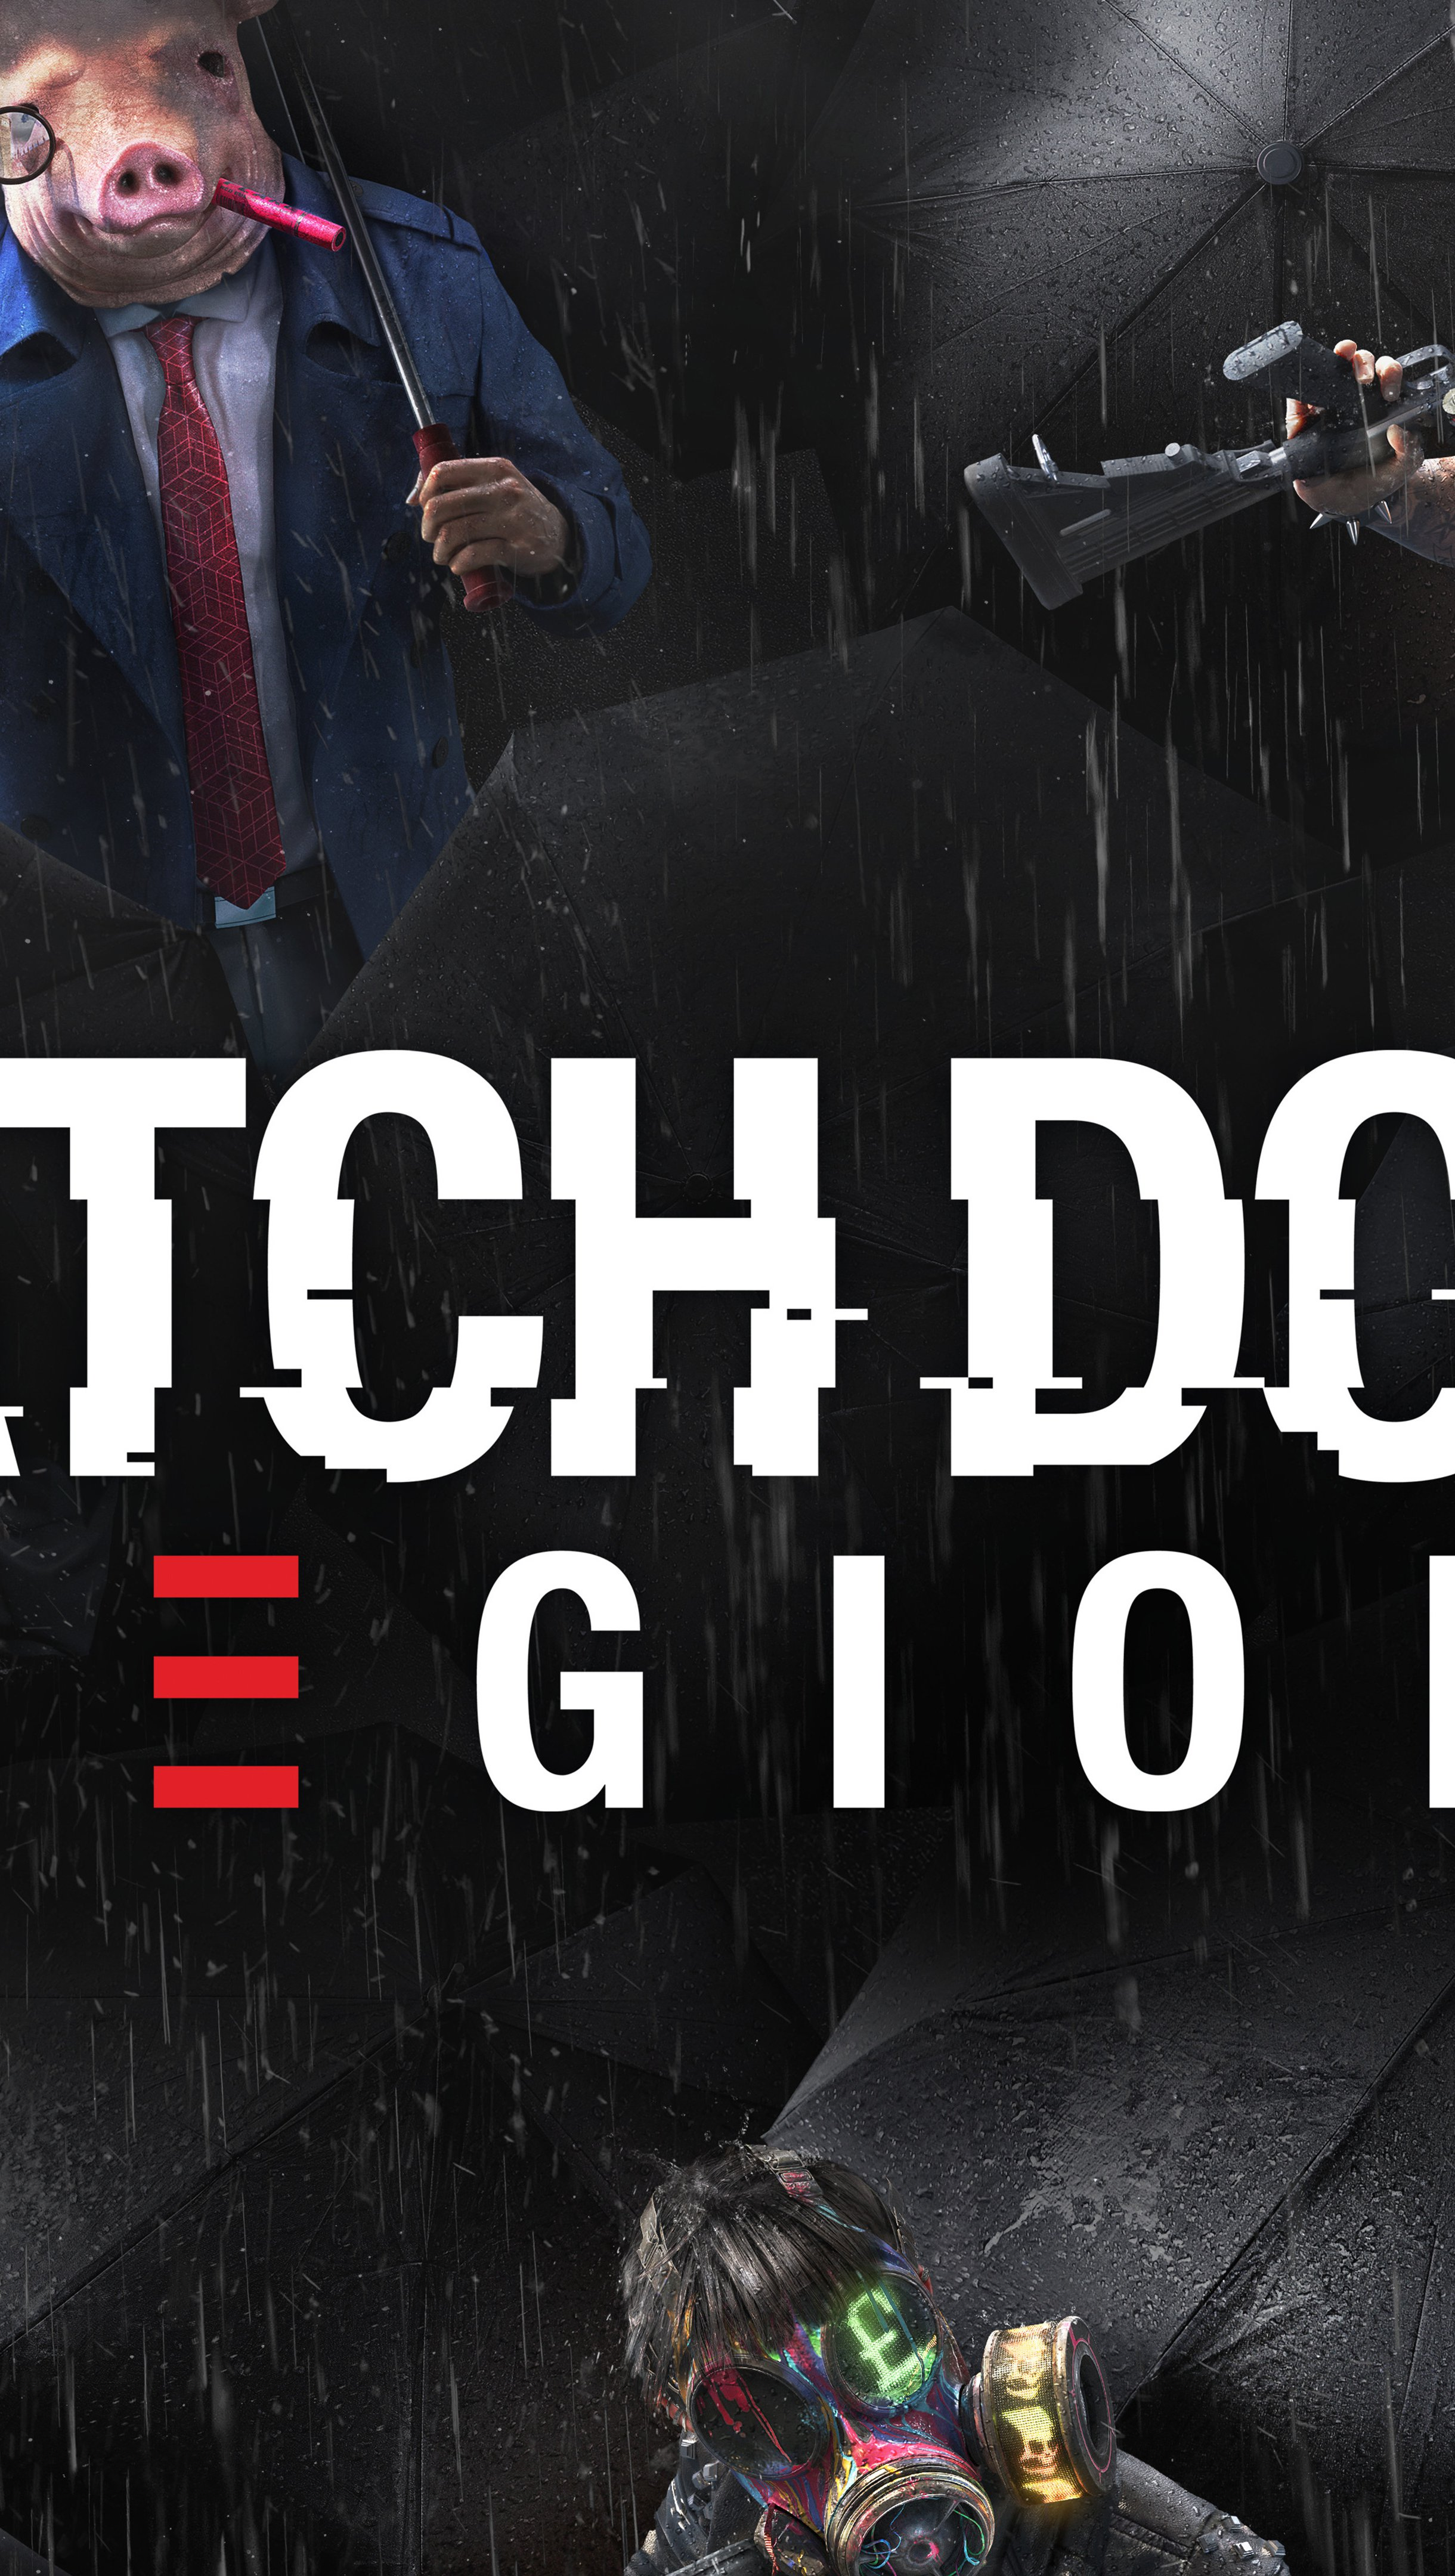 Wallpaper Watch Dogs Legion Characters Masks Vertical